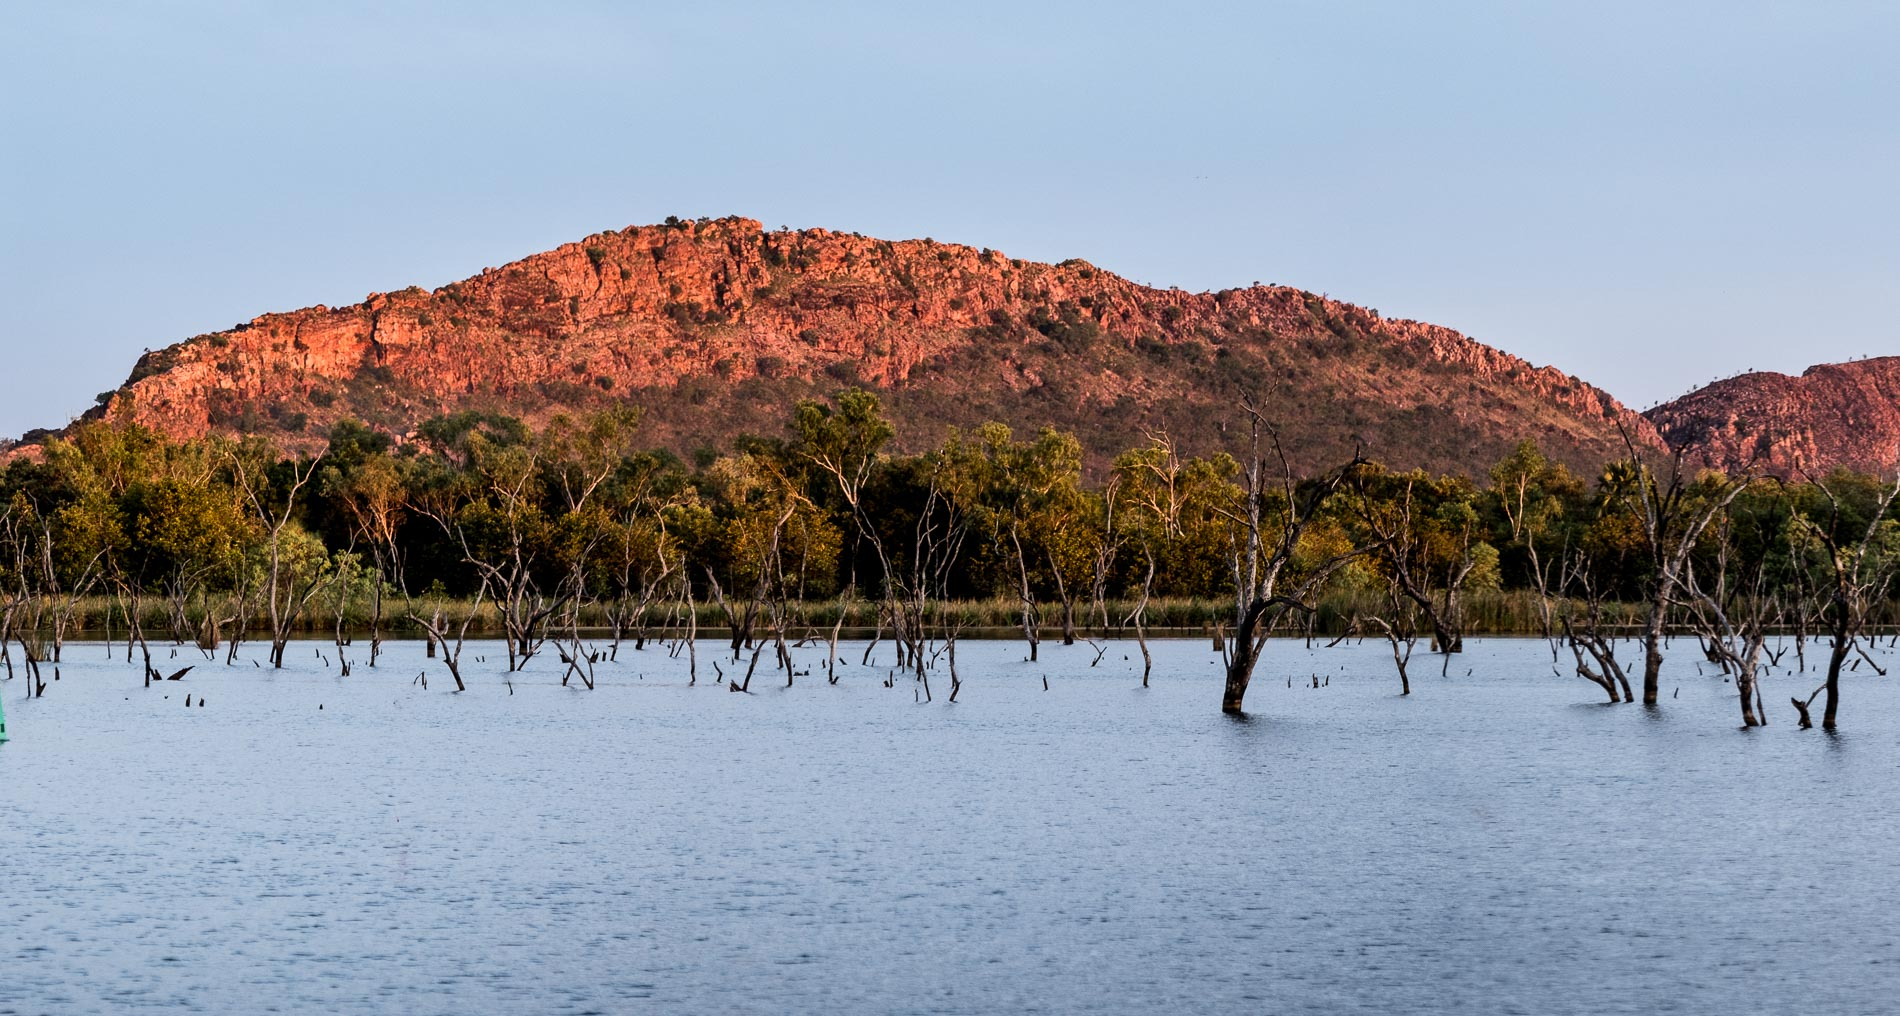 Vista from the New Deluxe Waterfront Cabins at Kimberleyland Holiday Park Kununurra